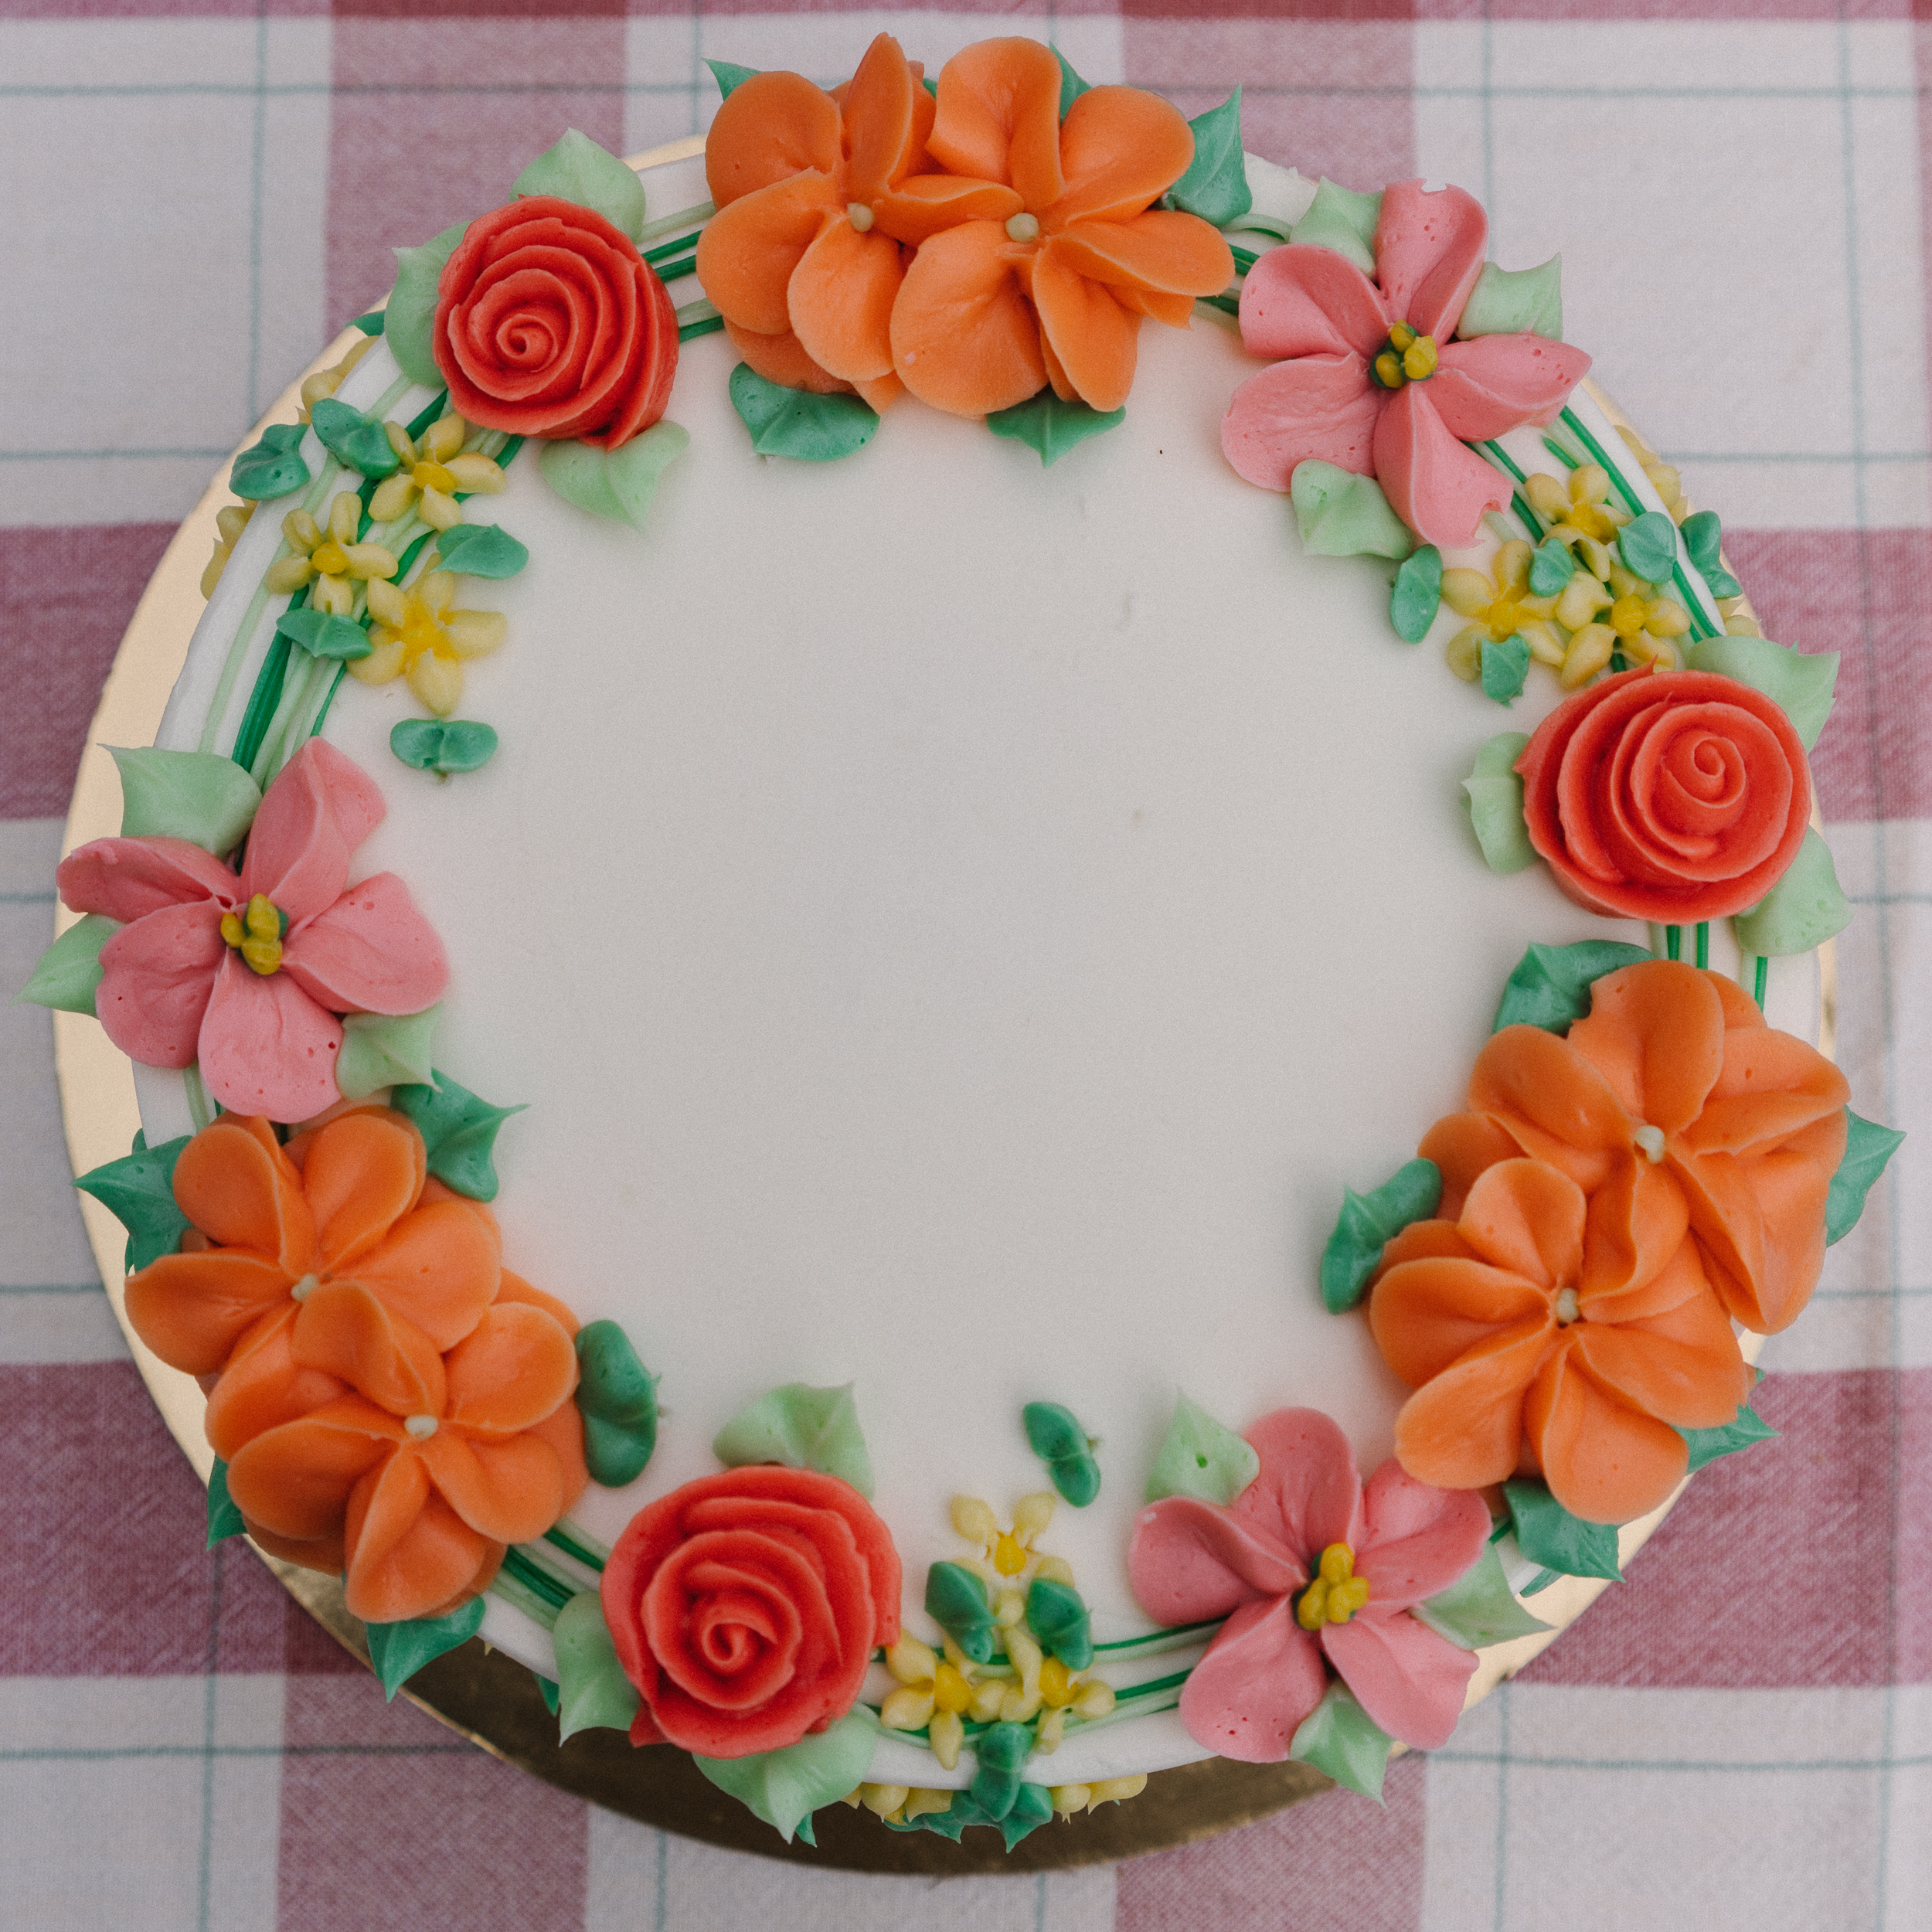 floral - summer wreath.jpg